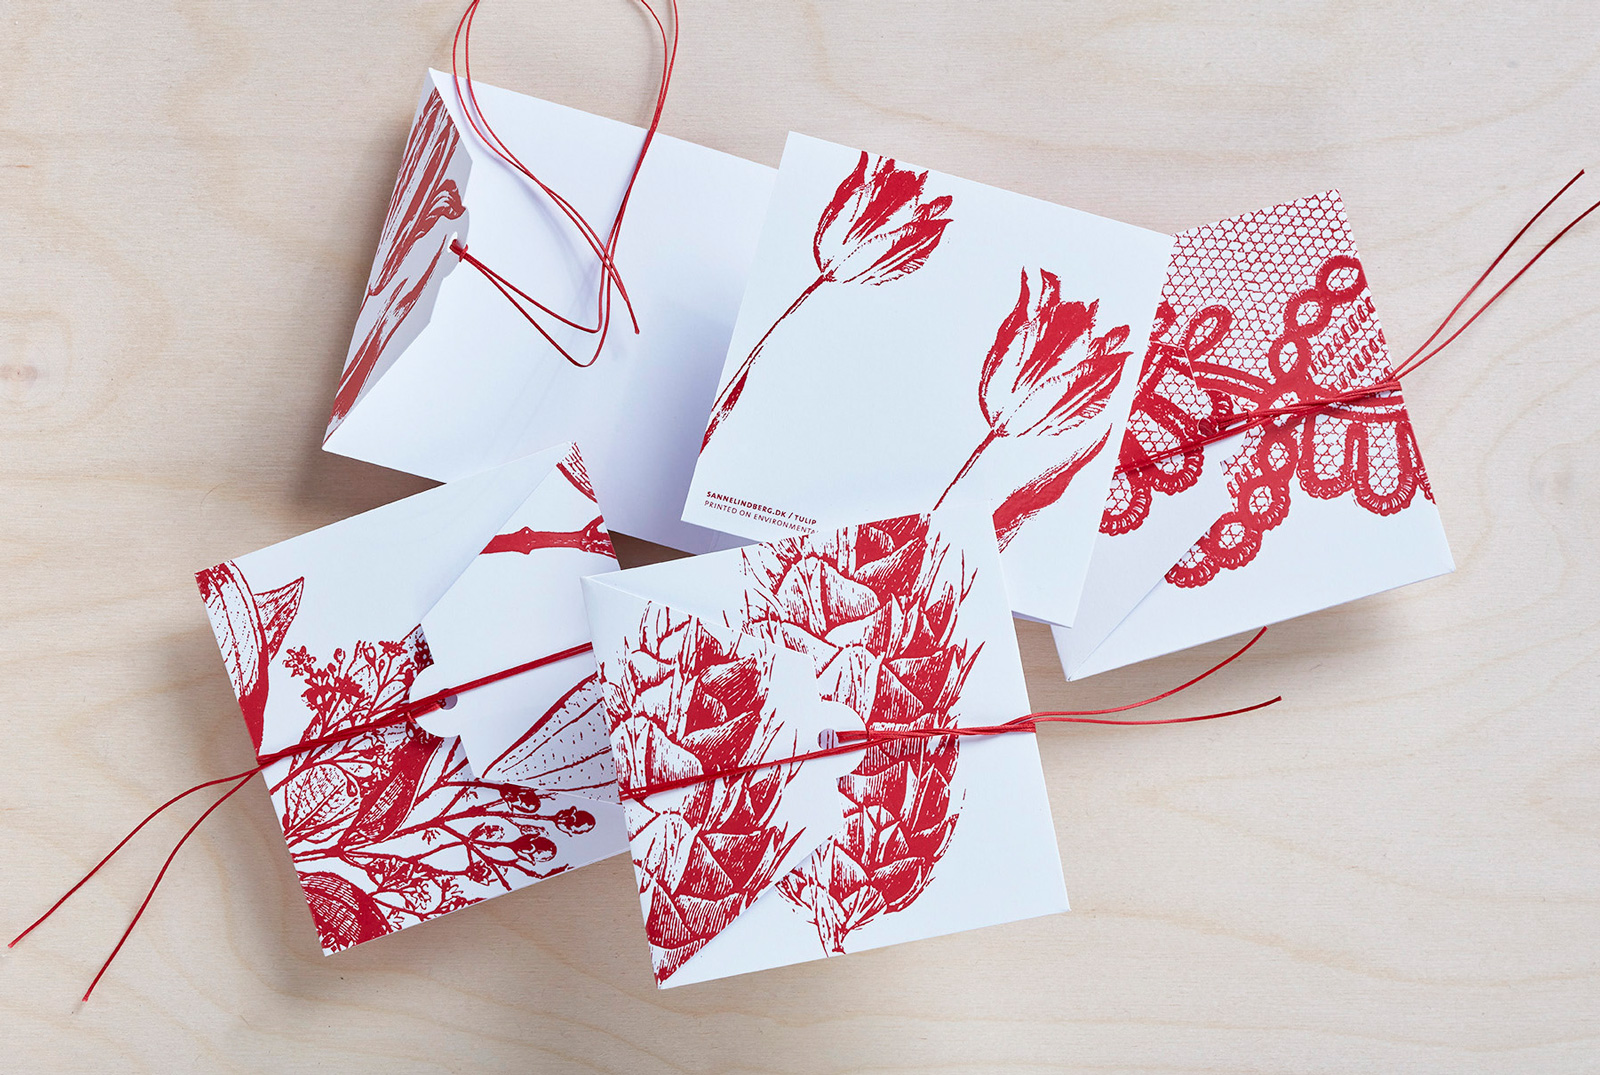 Sanne Lindberg Cards in DEEP RED. Shiny red laquer on crispy white. The cards measure, when folded; 12 cm x 12 cm. Folds out to triple size. The cards are sold with envelope and wrapped in cellophane.